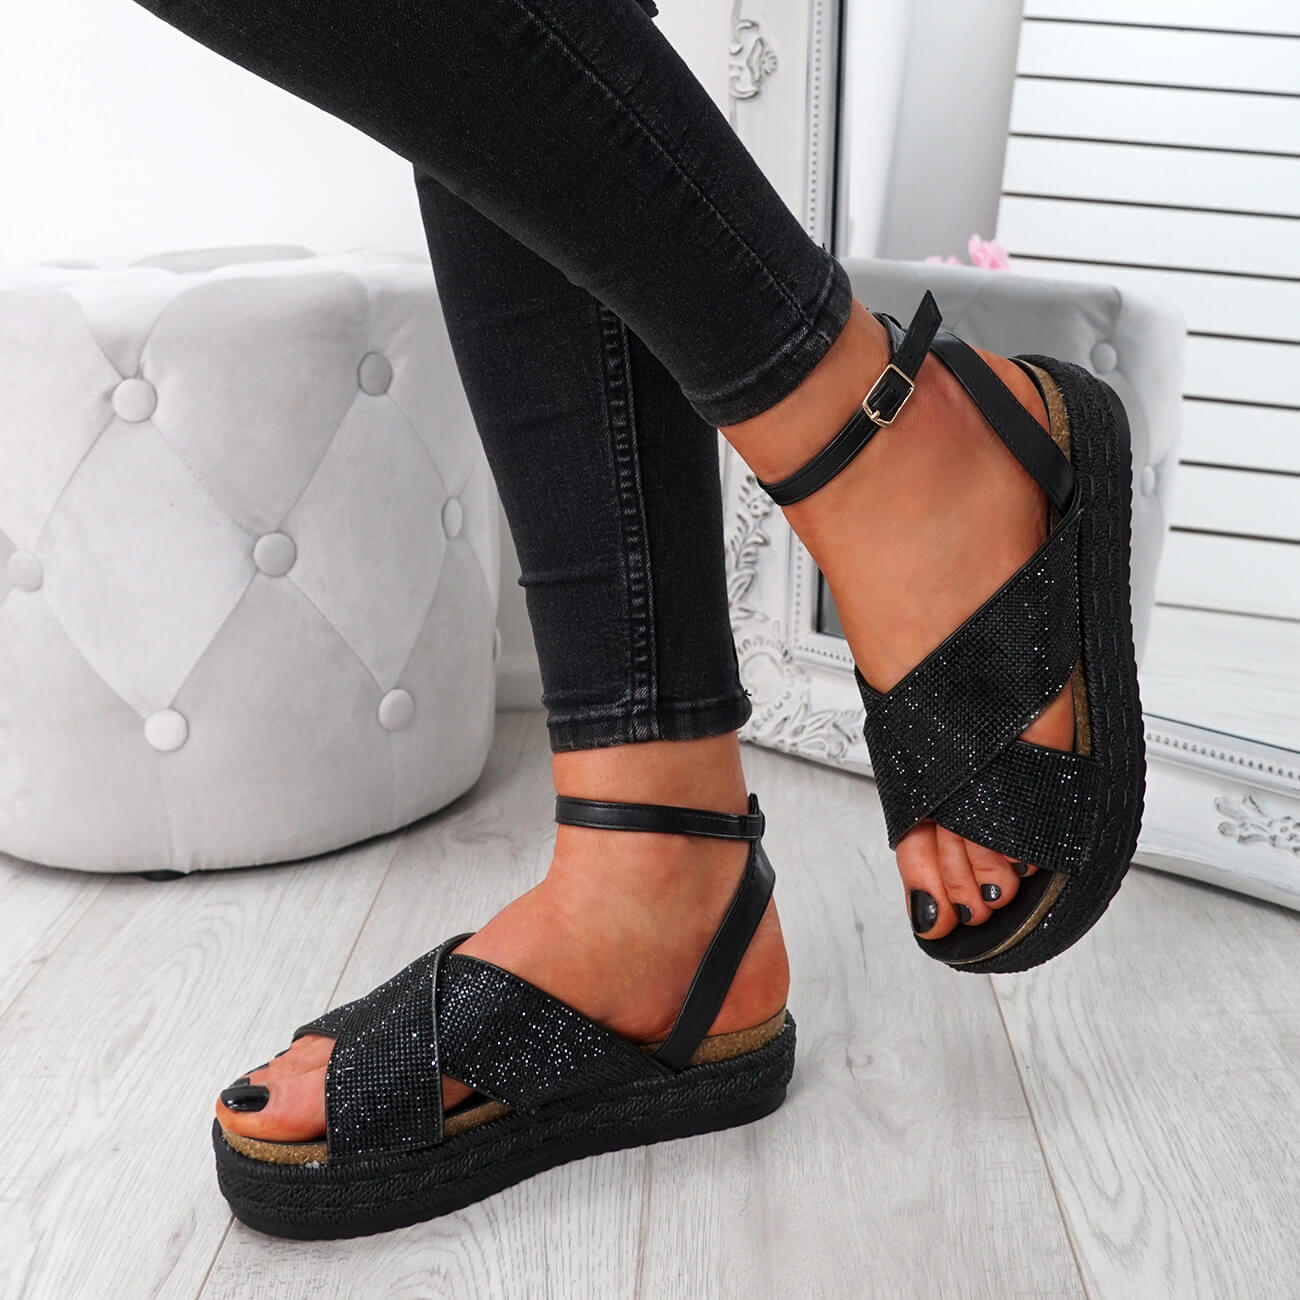 WOMENS-LADIES-ANKLE-STRAP-PEEP-TOE-STUDDED-LOW-HEEL-SANDALS-SHOES-SIZE-UK thumbnail 8